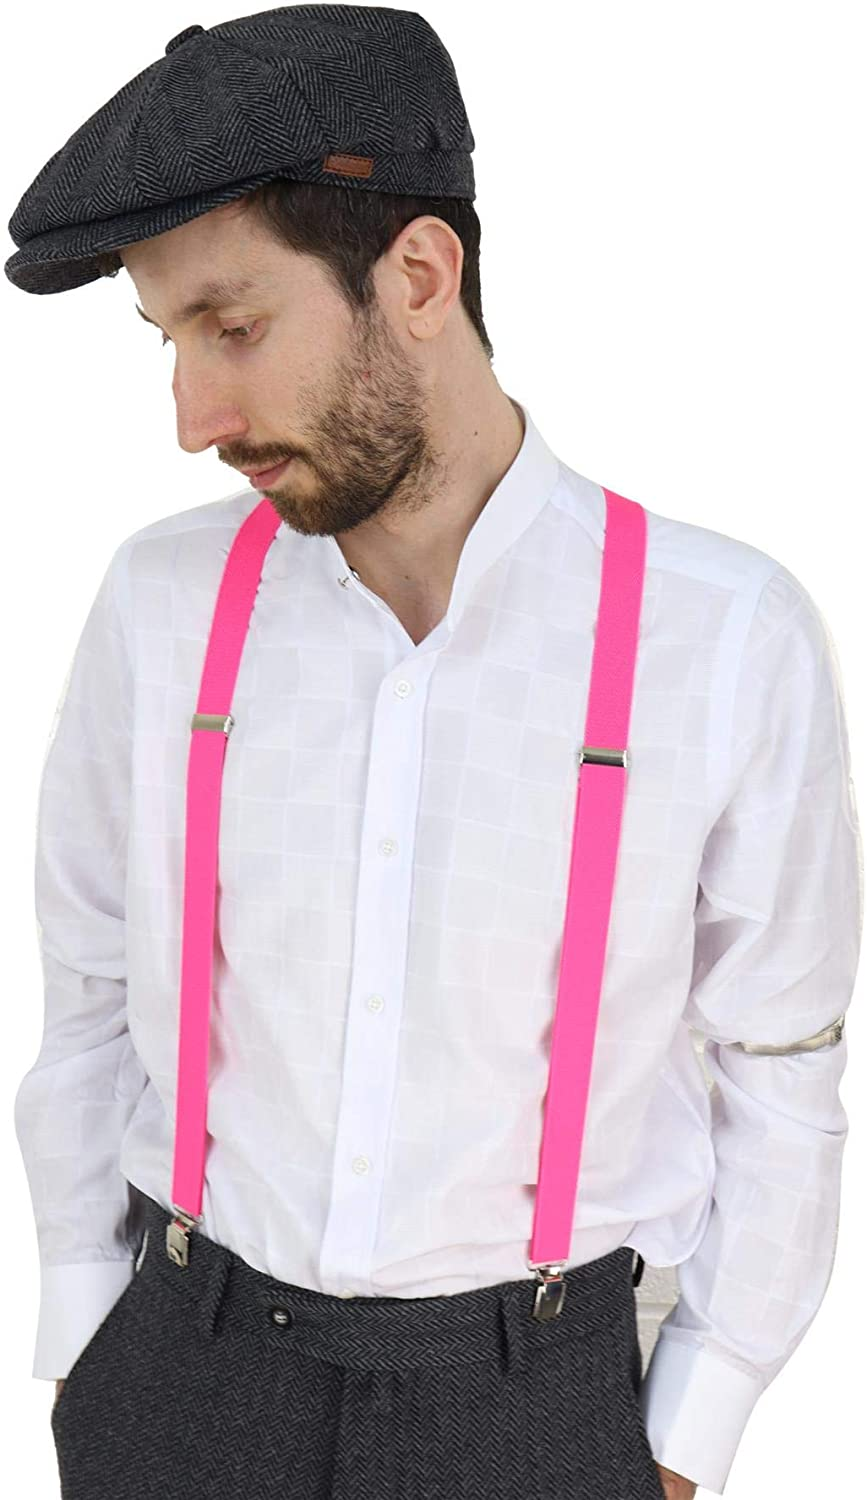 TruClothing.com Mens Classic Vintage Retro Trouser Braces Suspenders 1920s Gatsby Peaky Blinders White One-Size